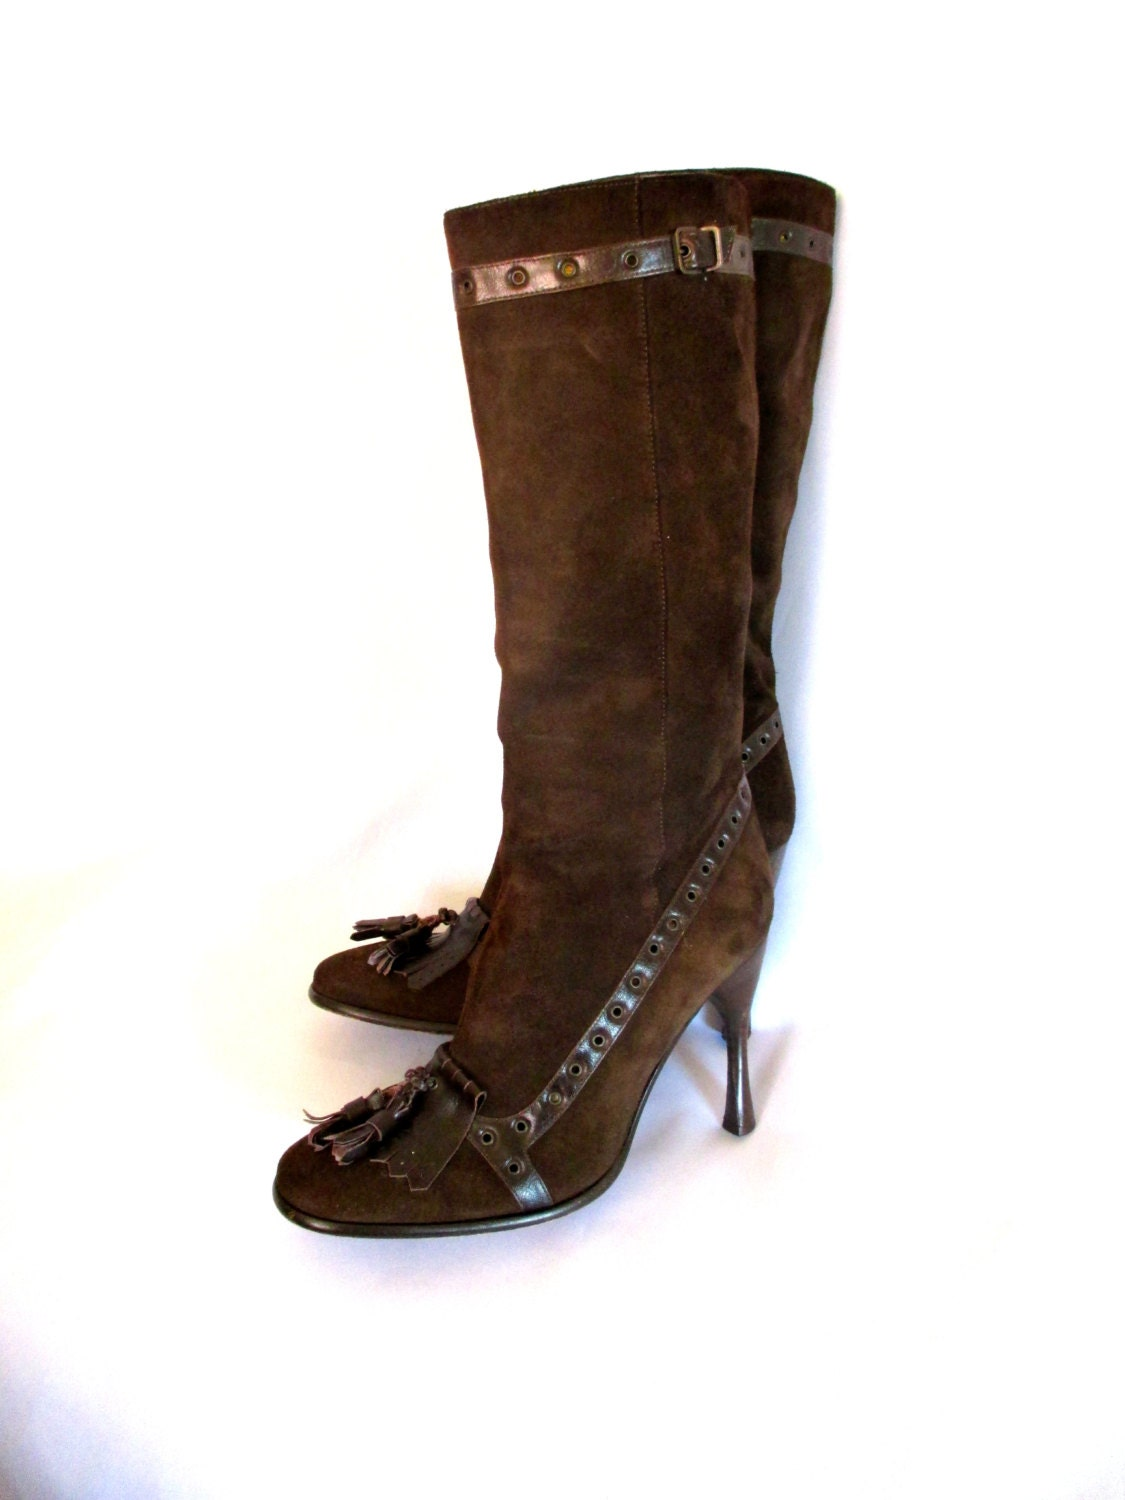 sale dolce gabbana brown suede high heel boots leather trim